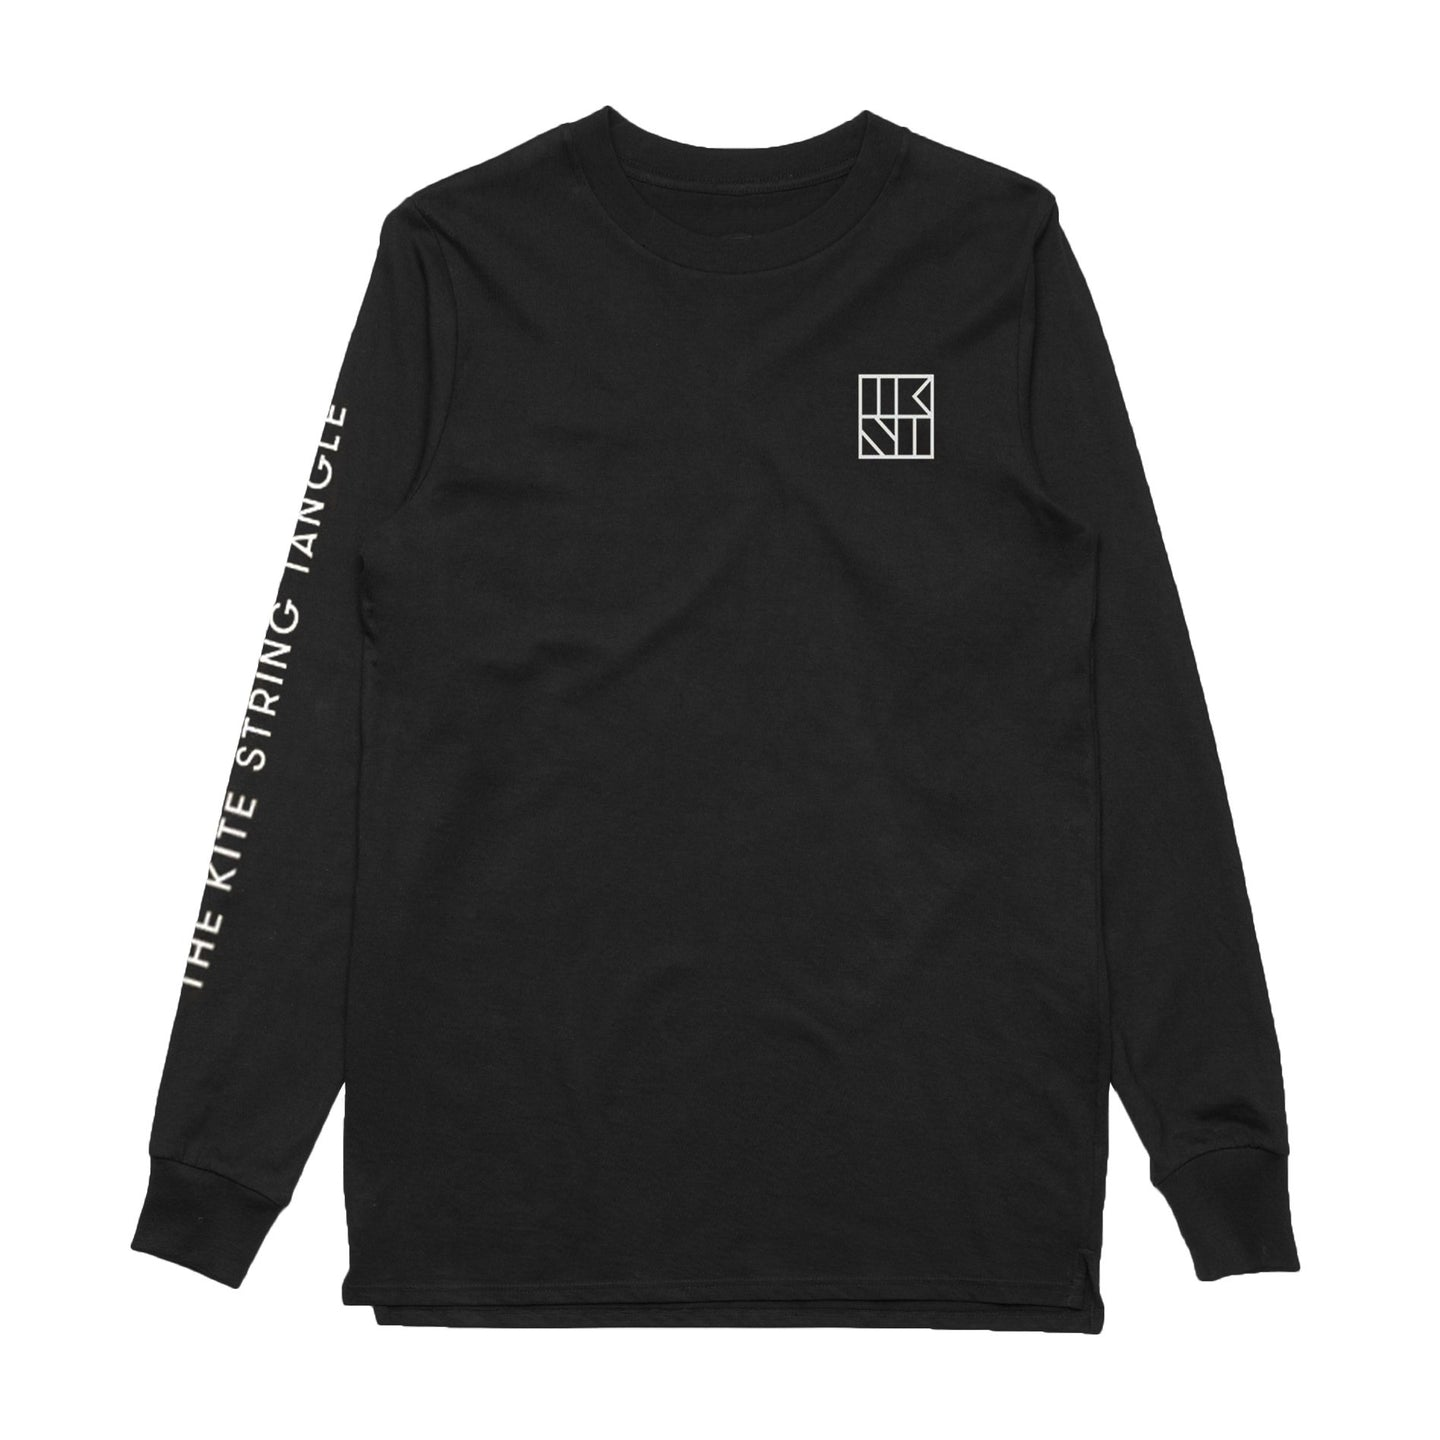 TKST Embroidered Longsleeve (Black)